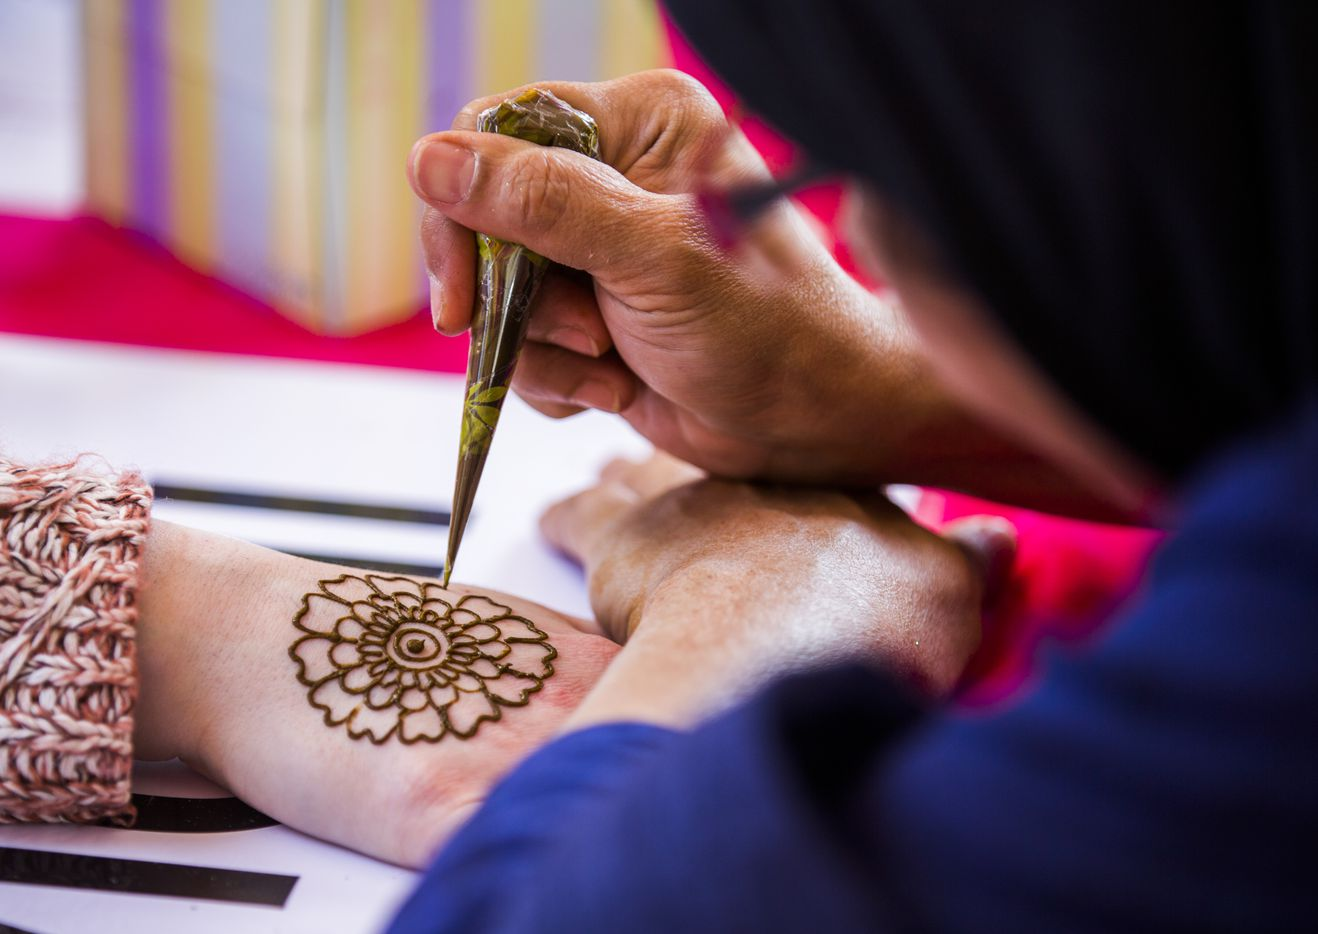 Samober Moosa of the India Association of North Texas applies henna to a woman's hand during the 27th Home Depot Asian Festival on Saturday, May 13, 2017 at Cotton Bowl Plaza in Dallas Fair Park.